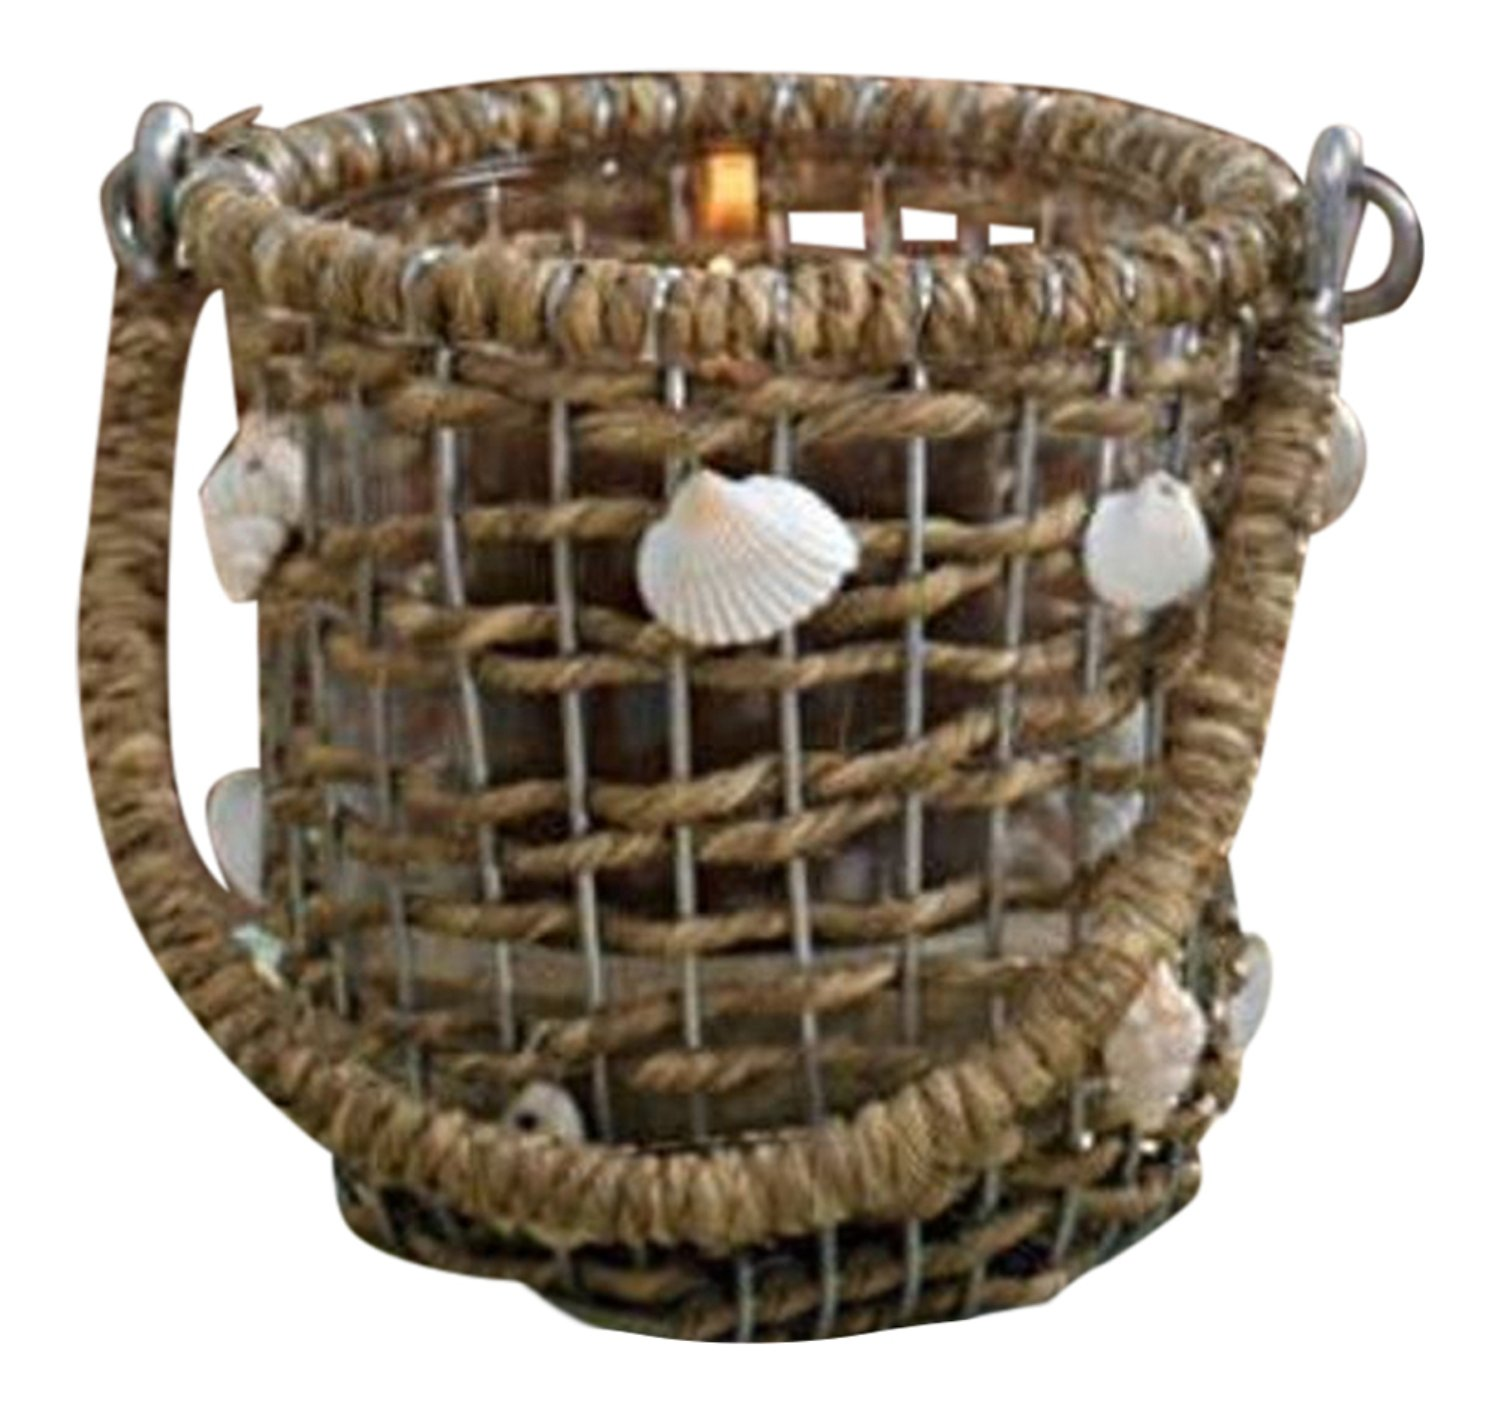 Waterside Natural Jute and Shells with Glass Votive Holder Park Designs